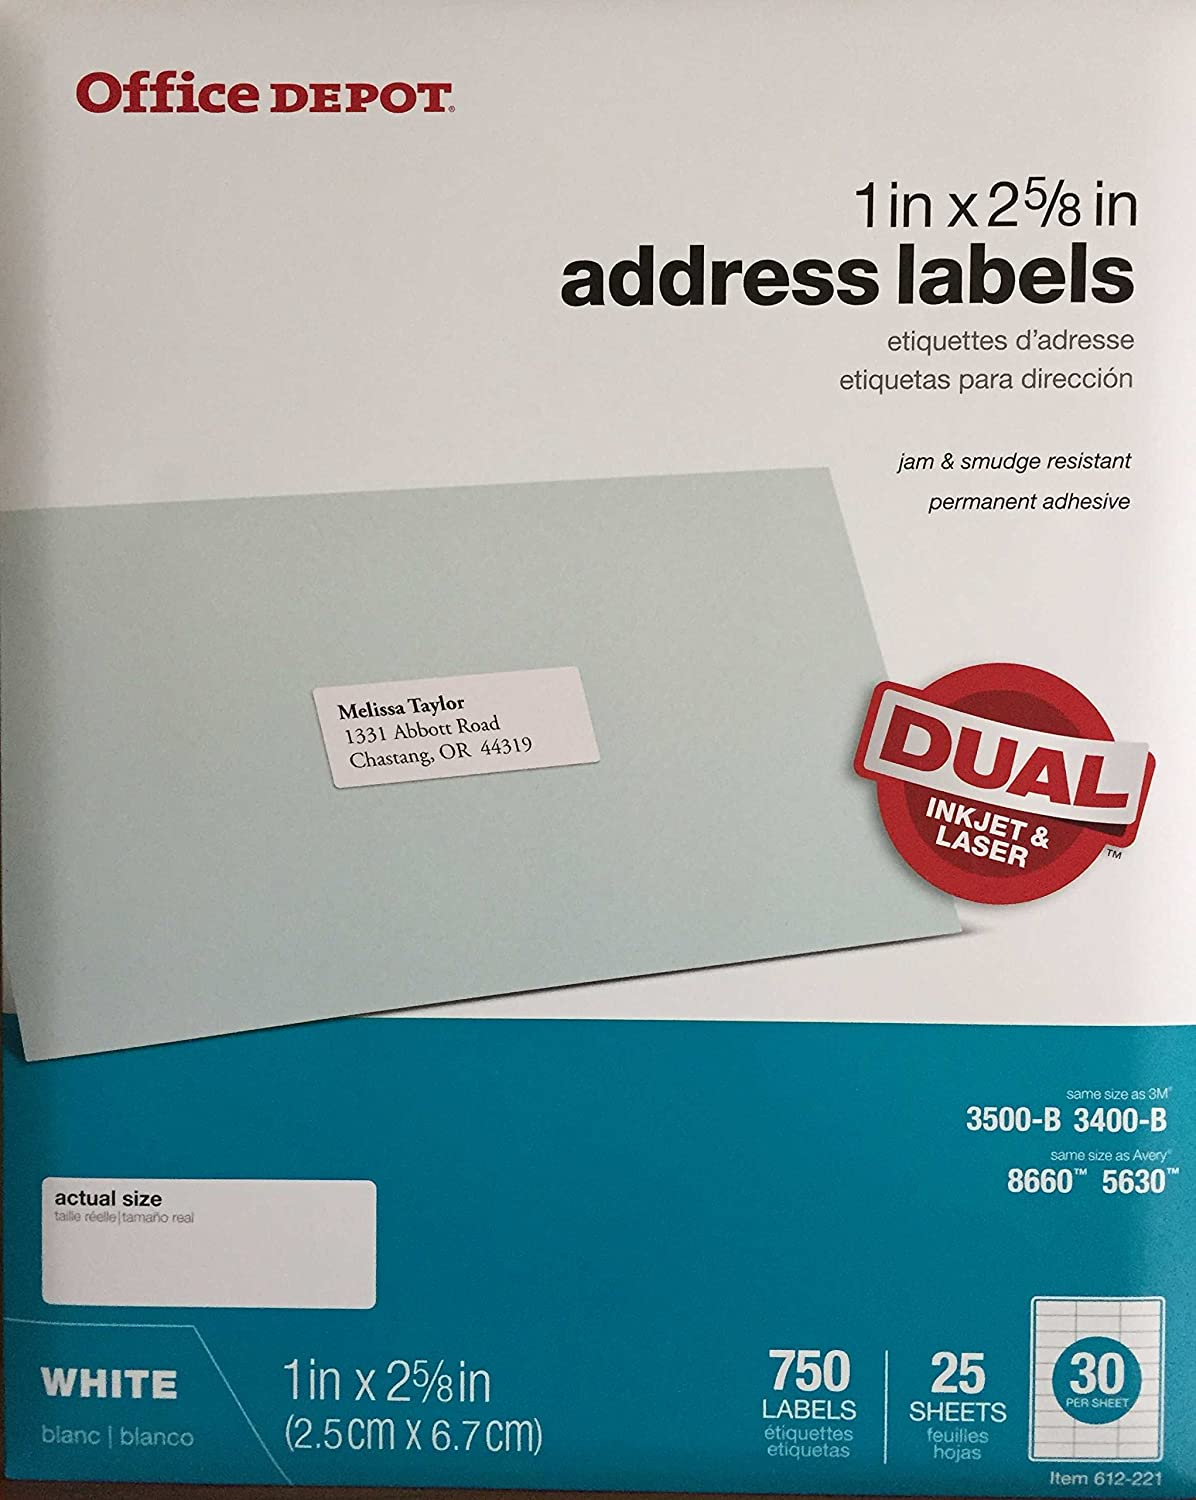 Amazon com office depot white inkjet laser address labels 1in x 2 5 8in pack of 750 505 o004 0003 toy remote controlled vehicles office products